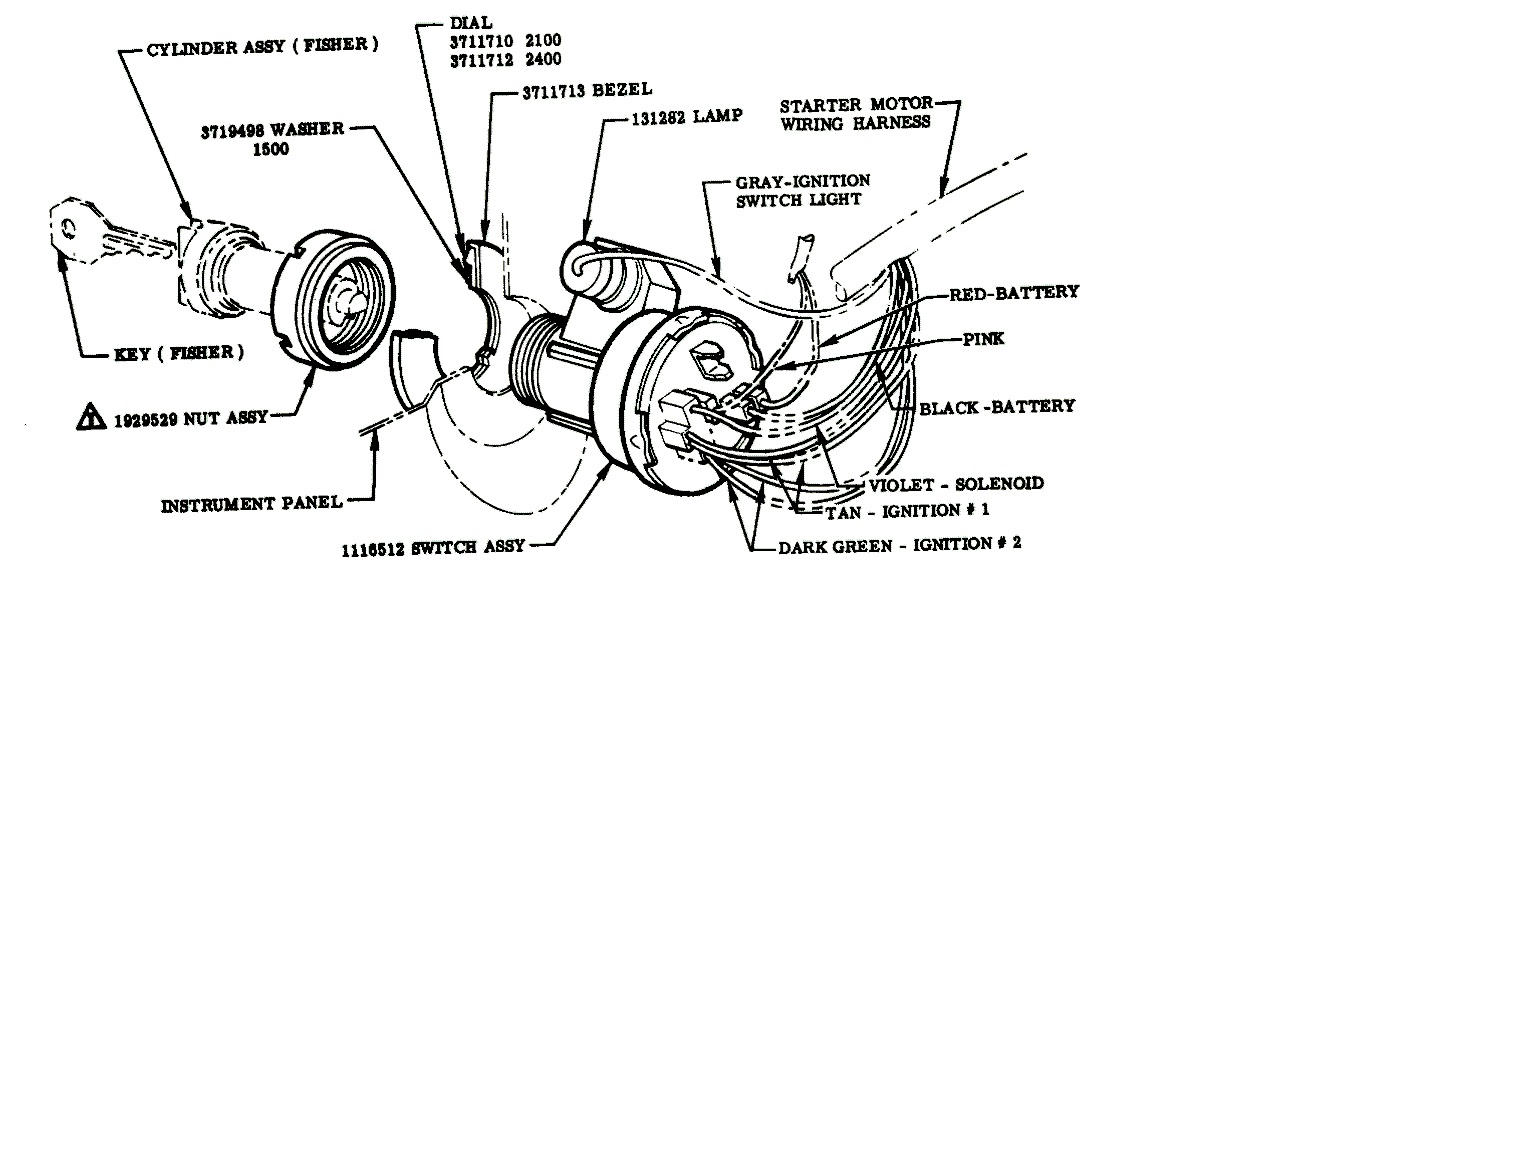 56 chev headlight dimmer switch wiring trusted wiring diagram rh dafpods co  1956 Chevy Headlight Switch Wiring Diagram Basic Headlight Wiring Diagram